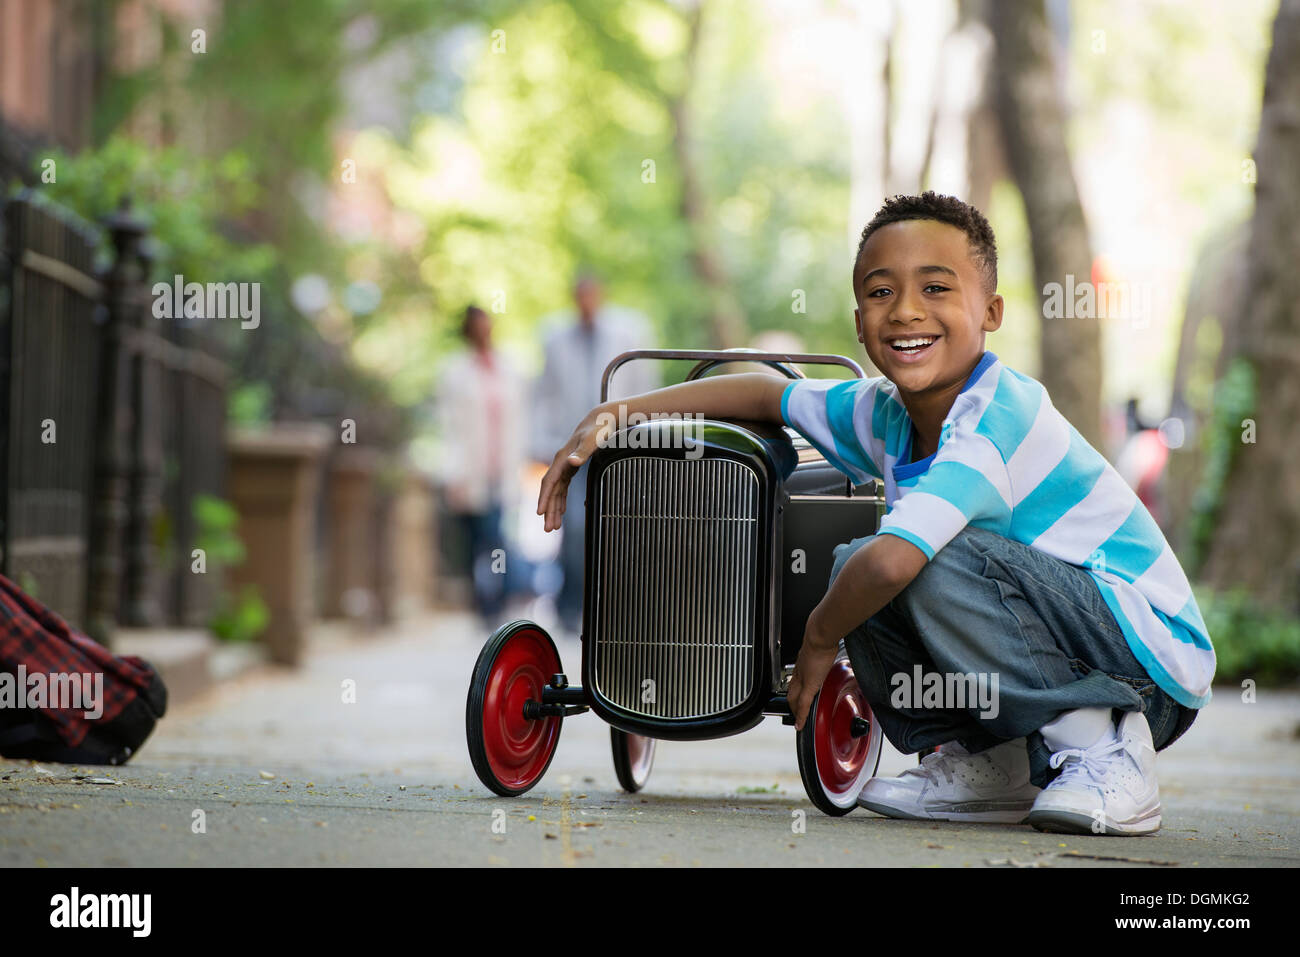 A young boy playing with a old fashioned toy car on wheels on a city street. - Stock Image